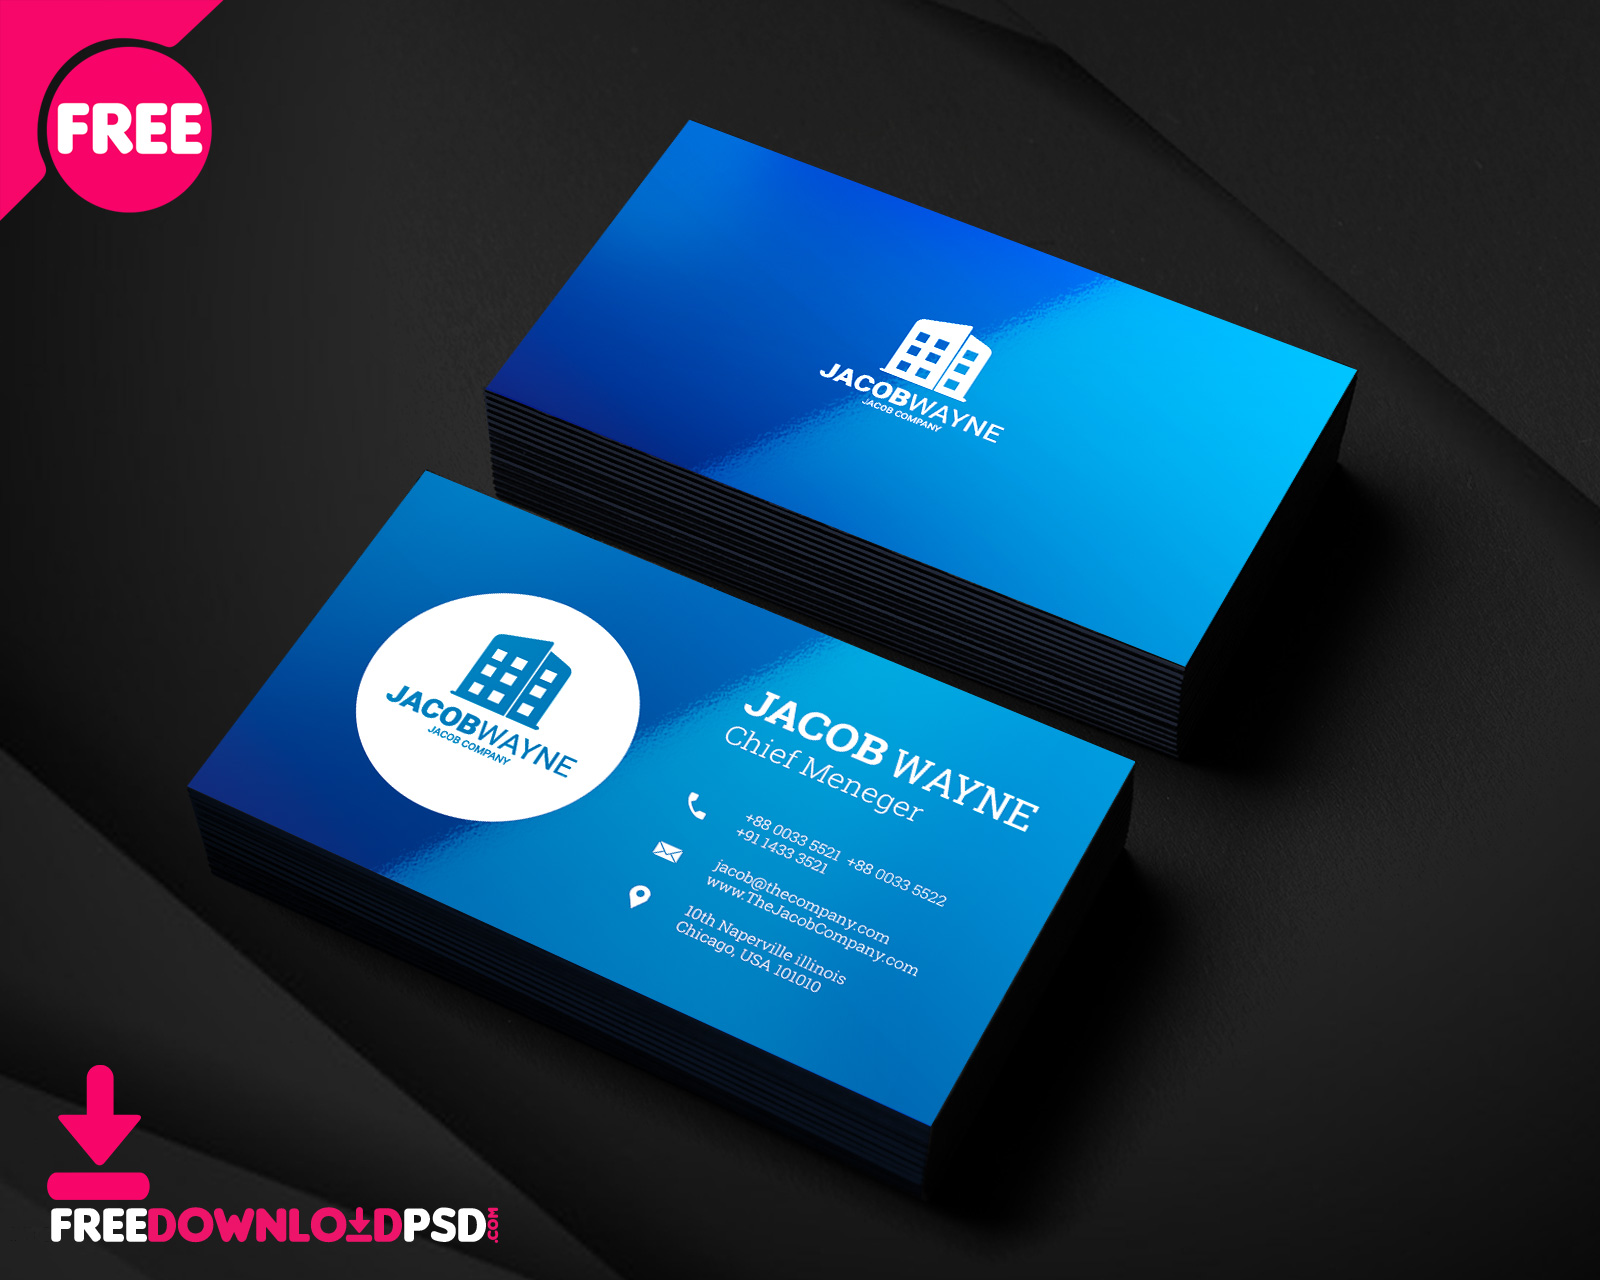 Real estate business card psd freedownloadpsd real estate business card psd free real estate business card templates for word flashek Image collections